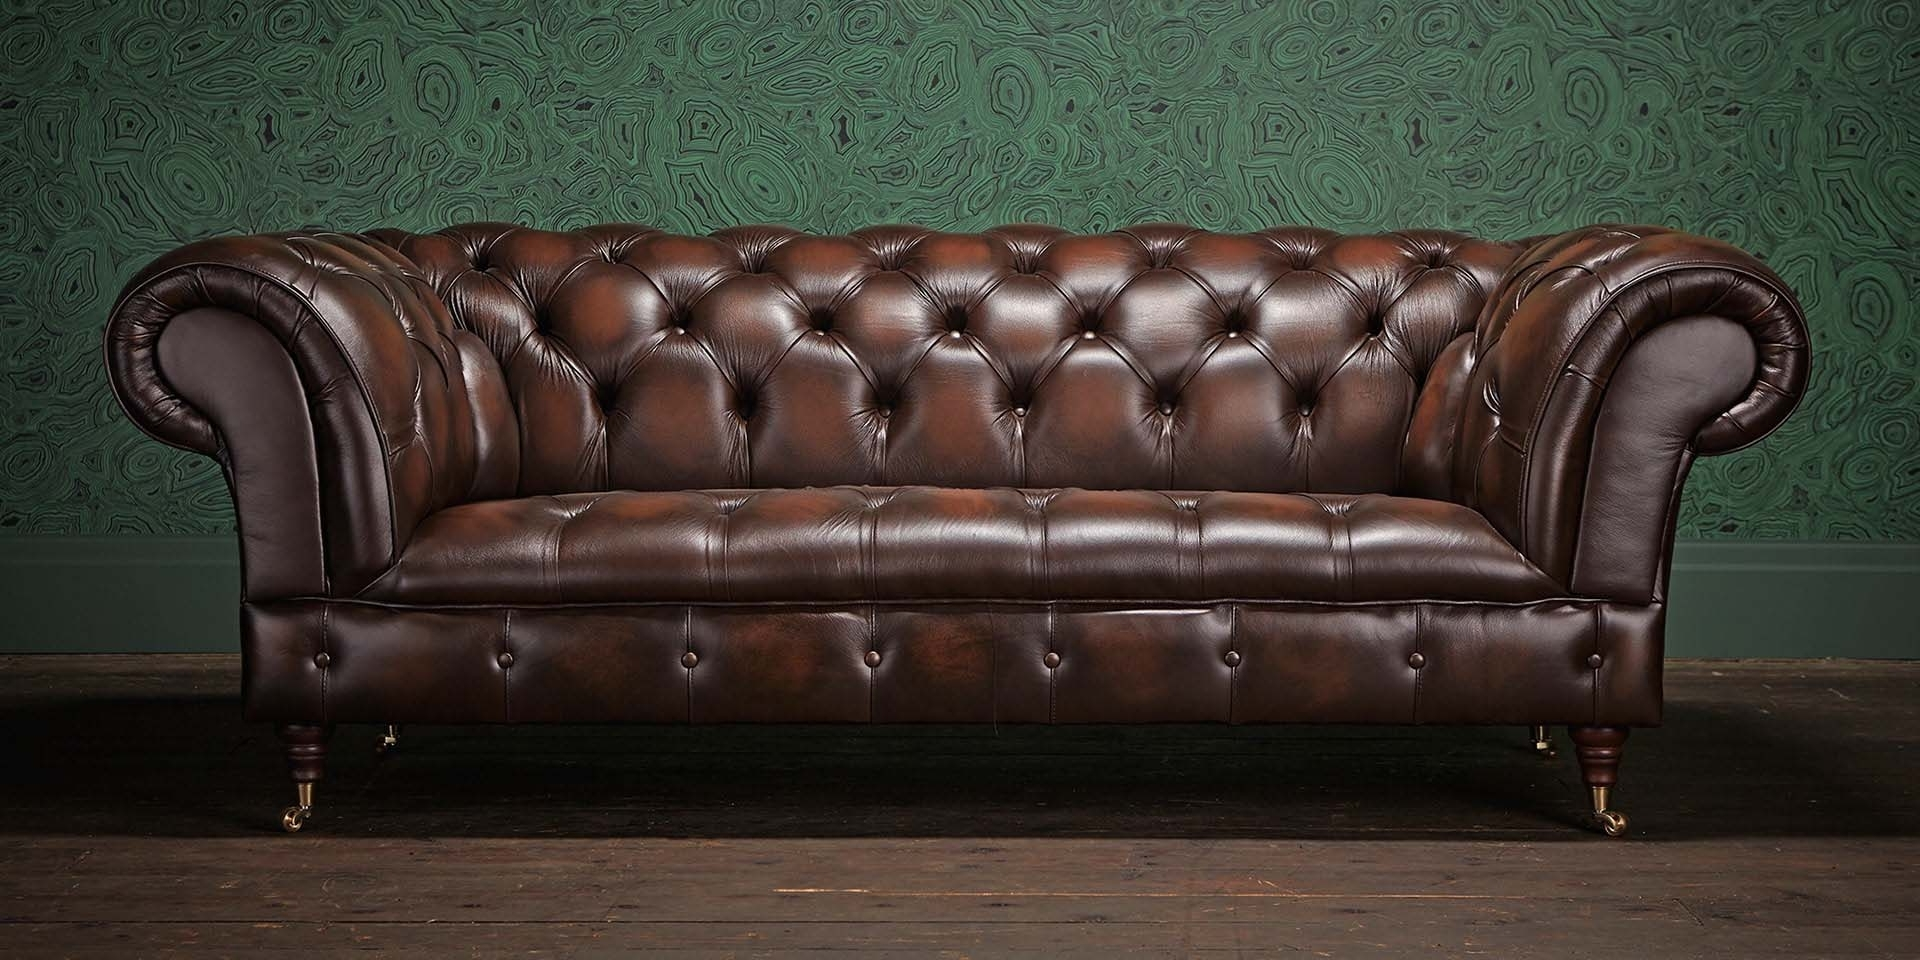 Chesterfield Sofas With Regard To Favorite 4 Vital Things To Look For In A Leather Chesterfield Sofa – Blogbeen (View 16 of 20)